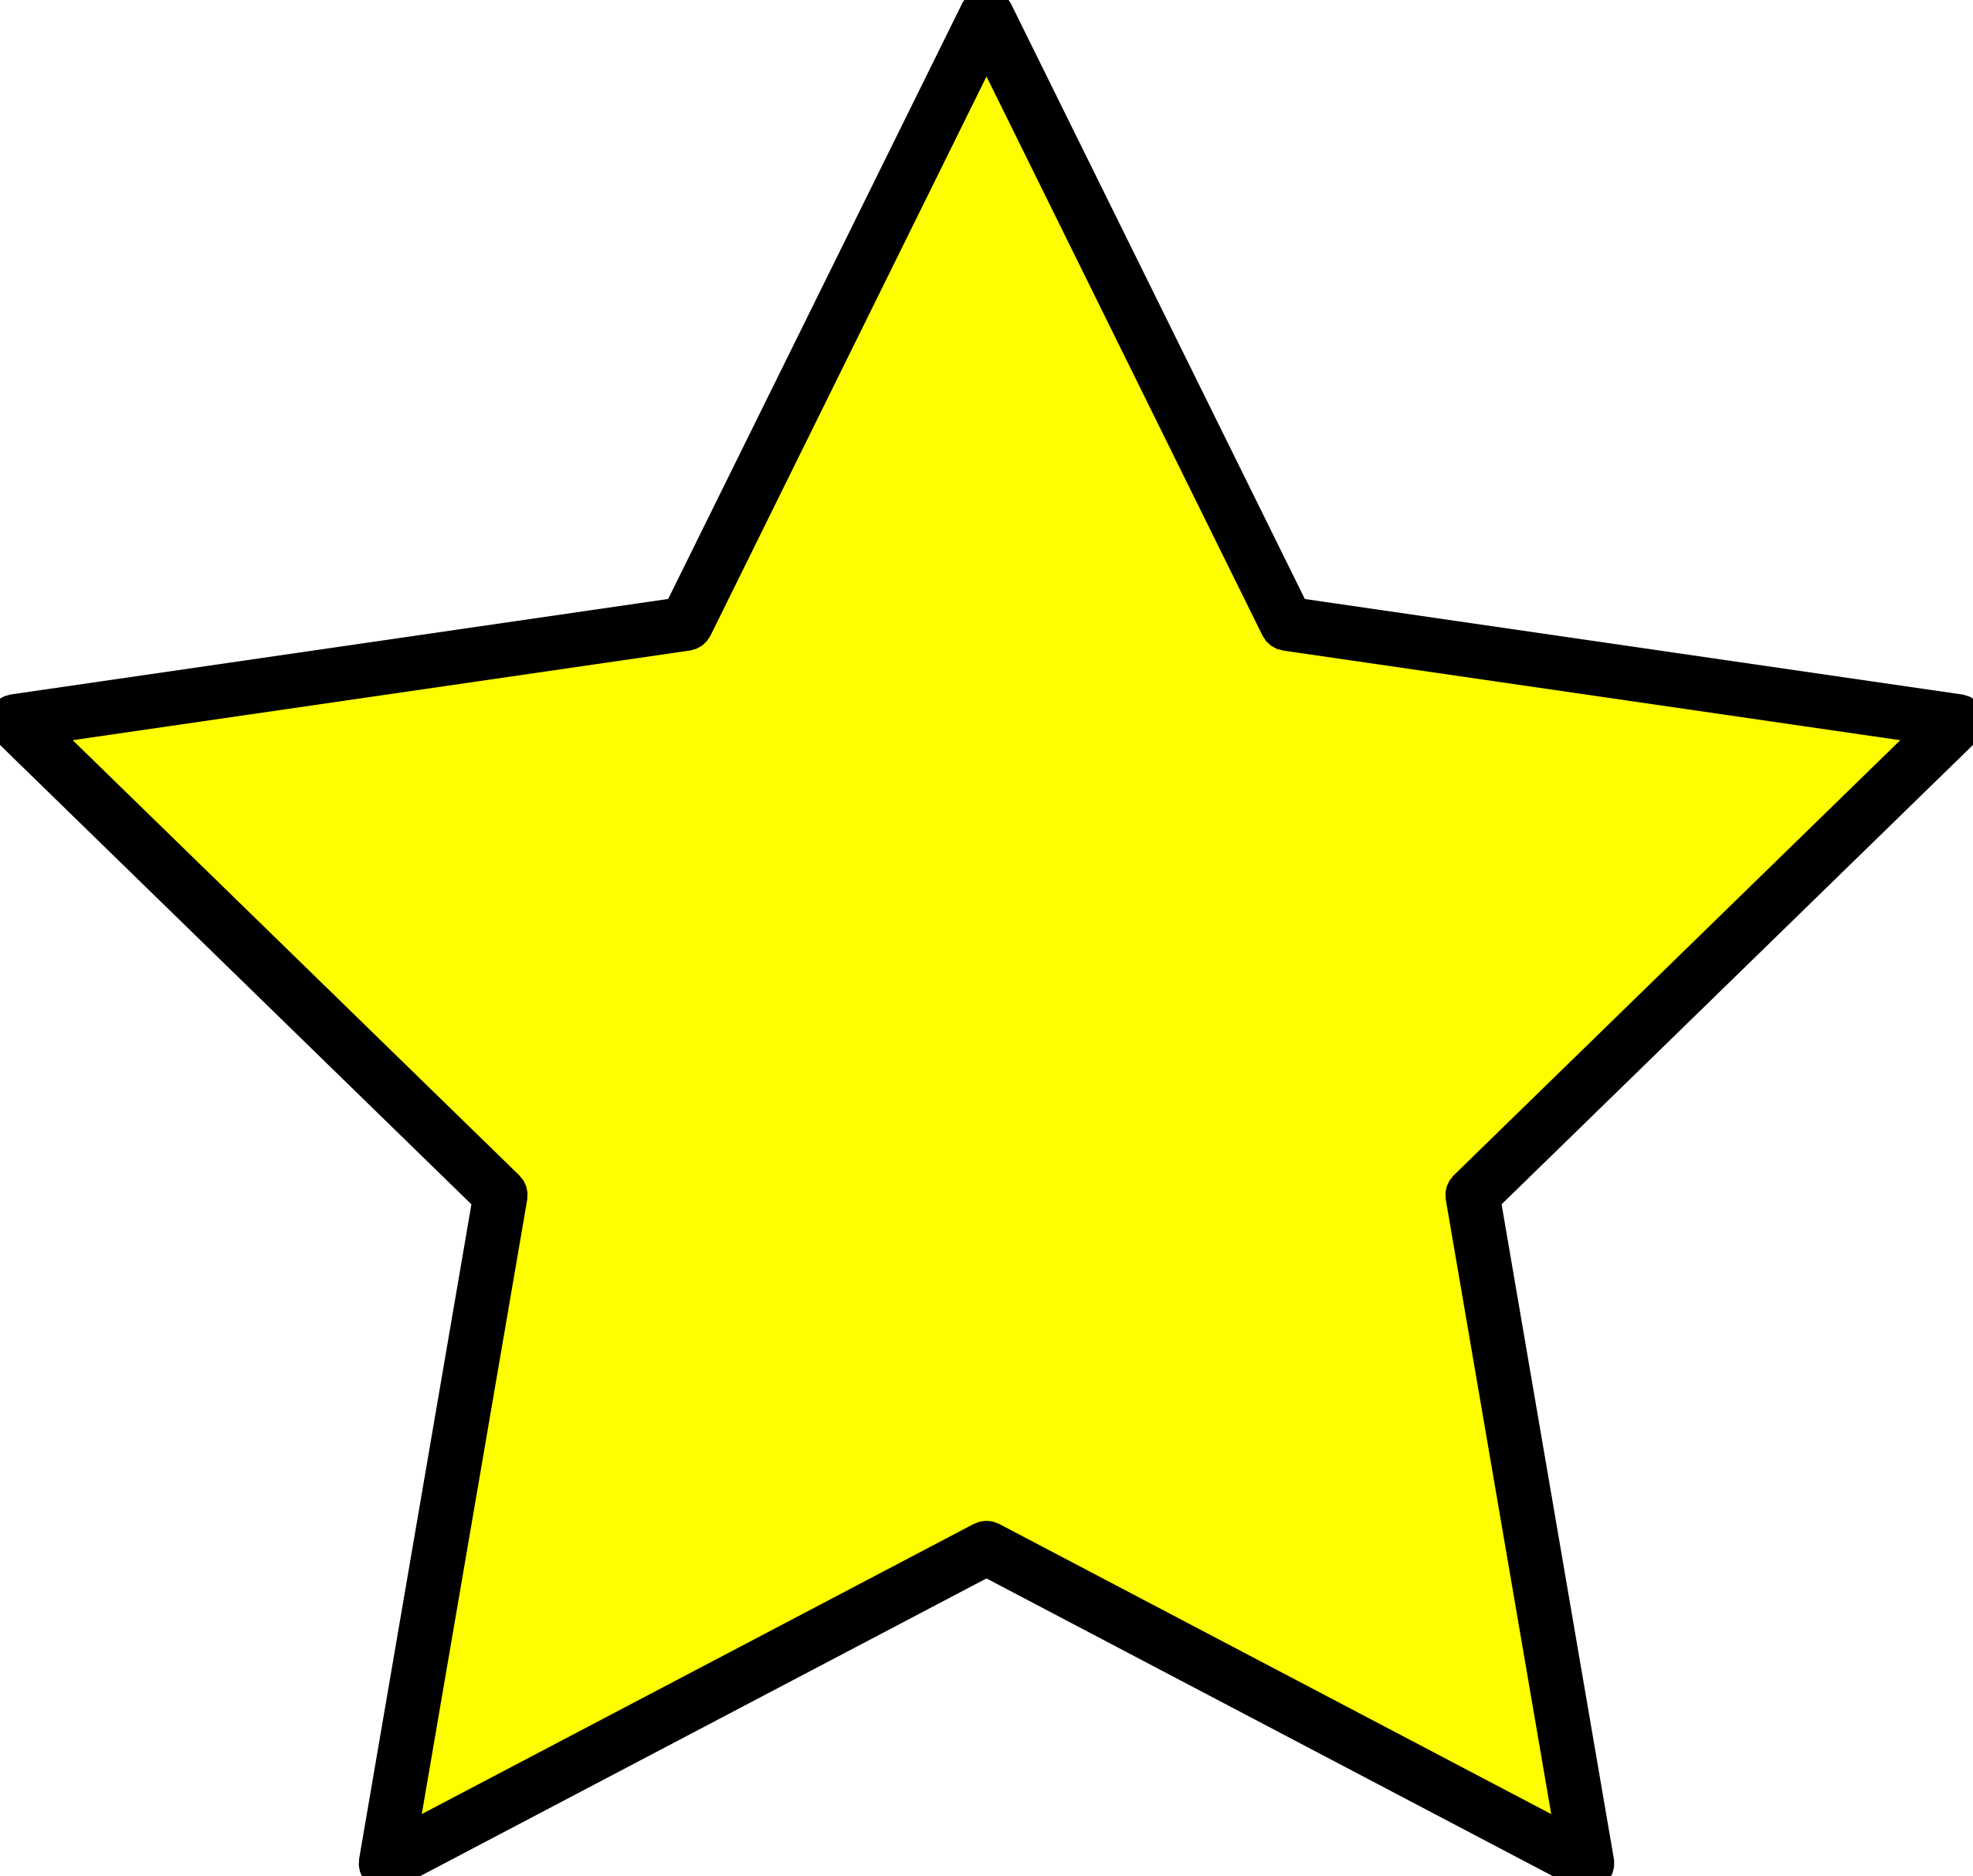 Gold Star Transparent - ClipArt Best